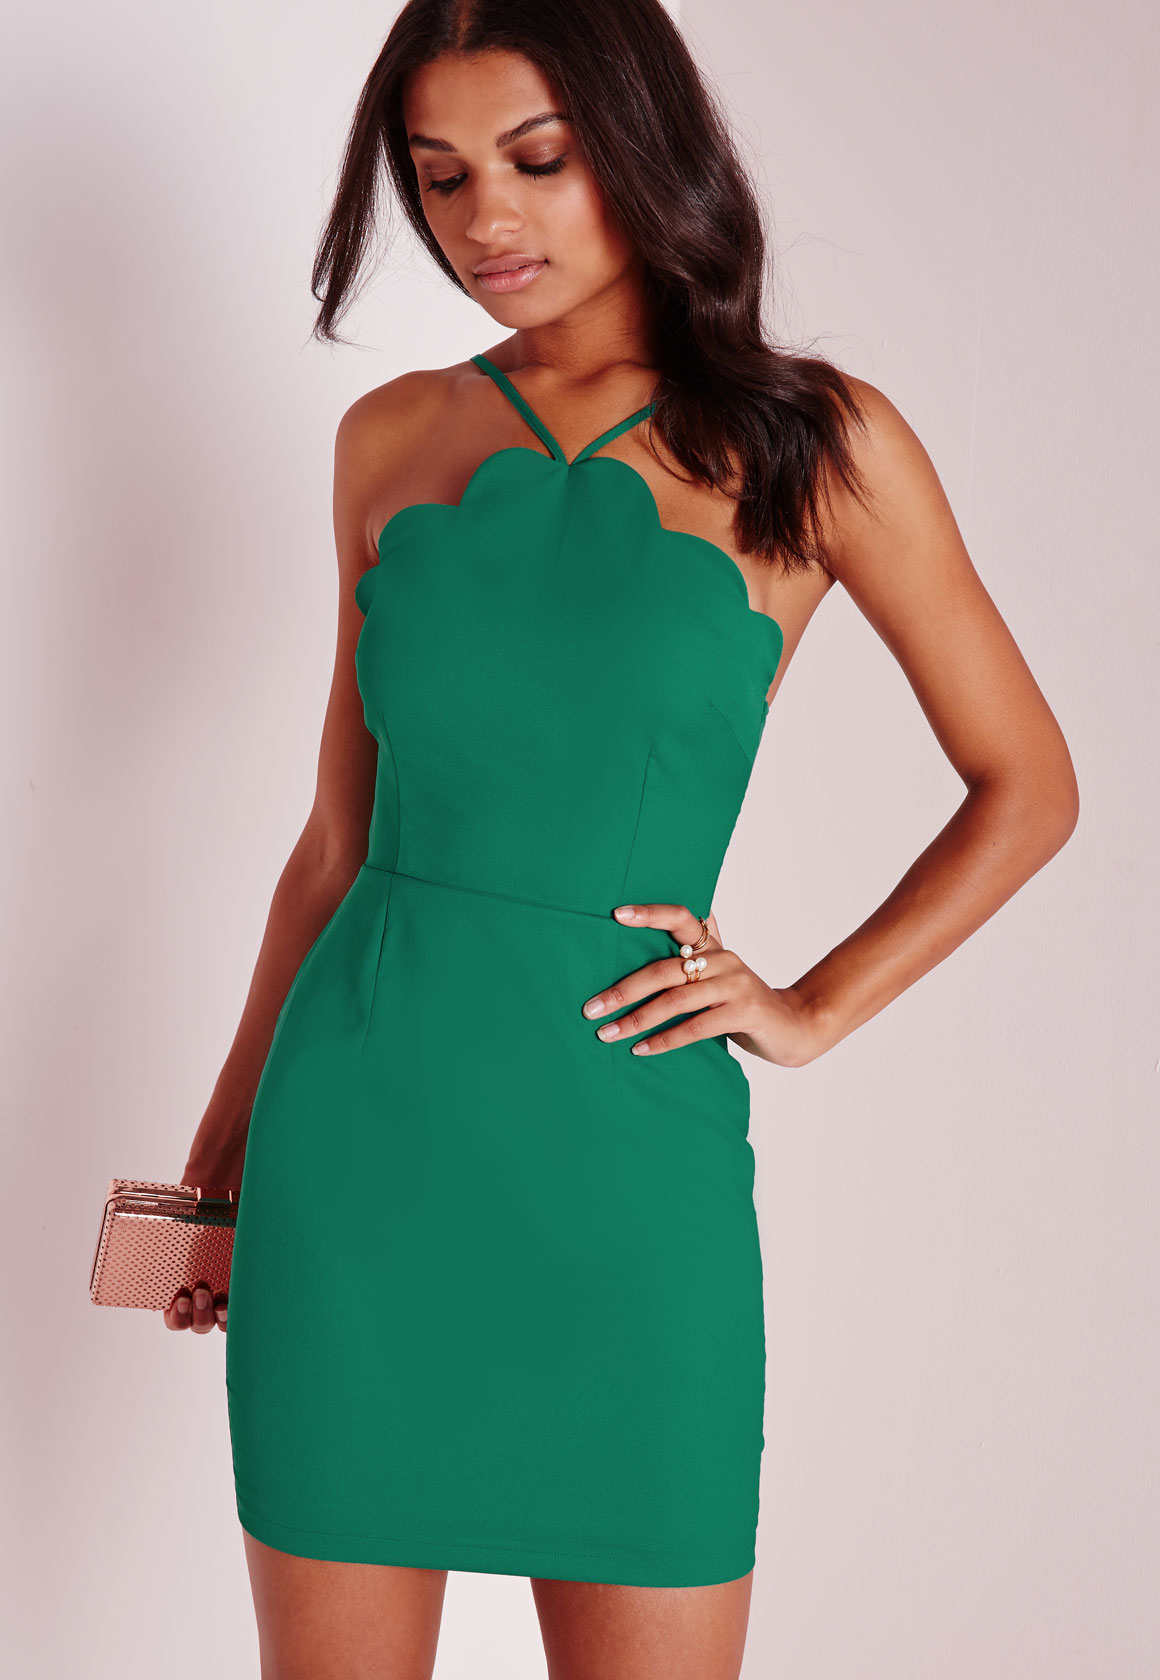 Missguided Scallop Bodycon Dress Green in Green - Lyst